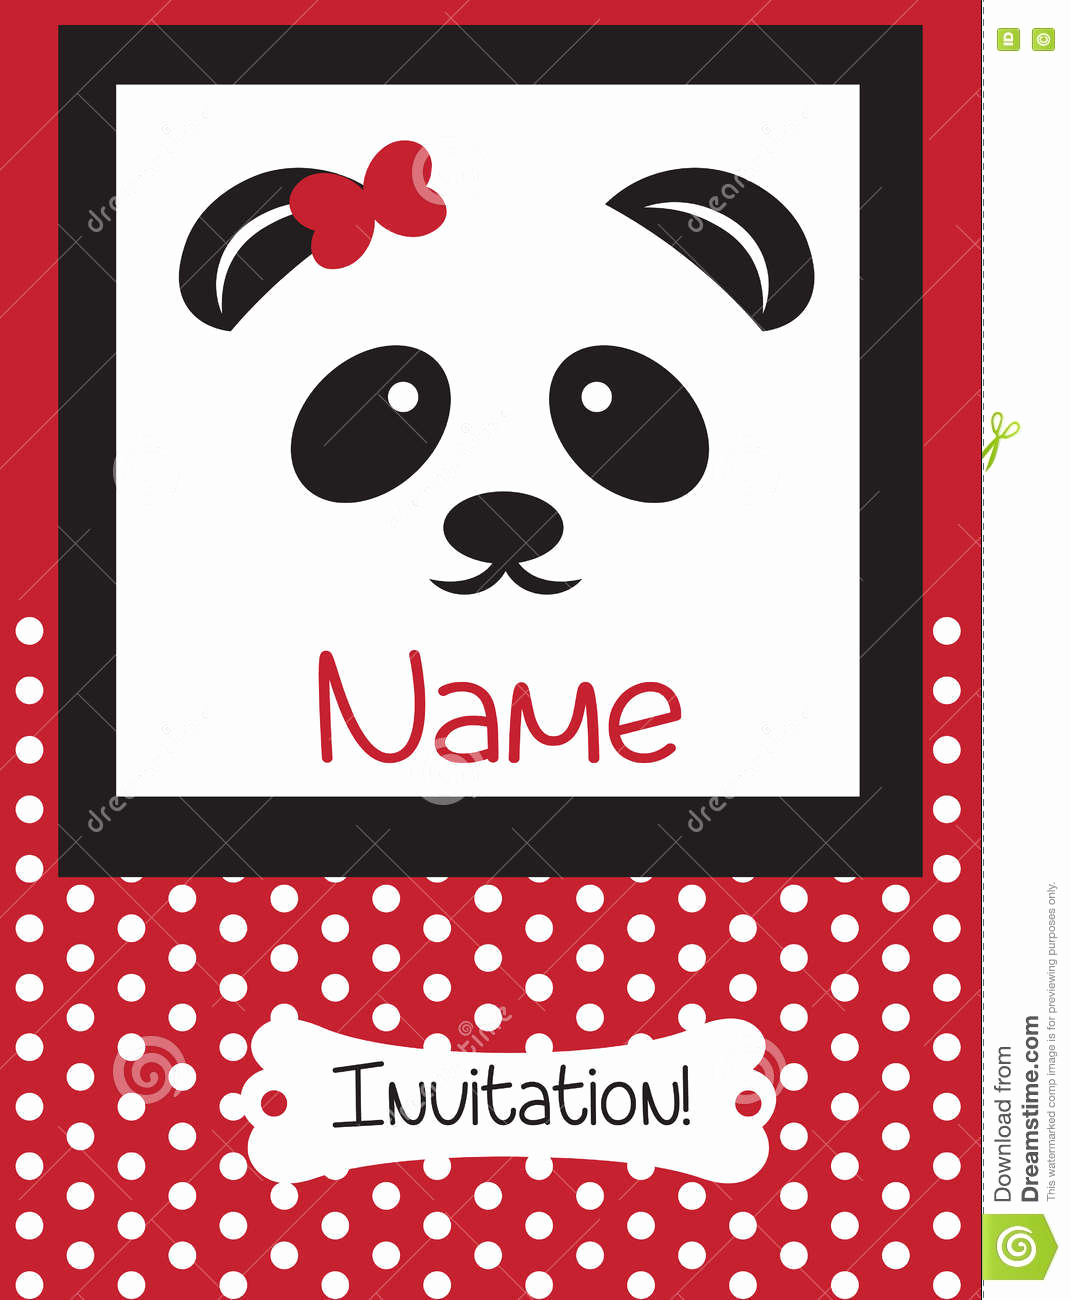 Panda Birthday Invitation Templates Free Awesome Invitation Card Retro Dotted Pattern Background Stock